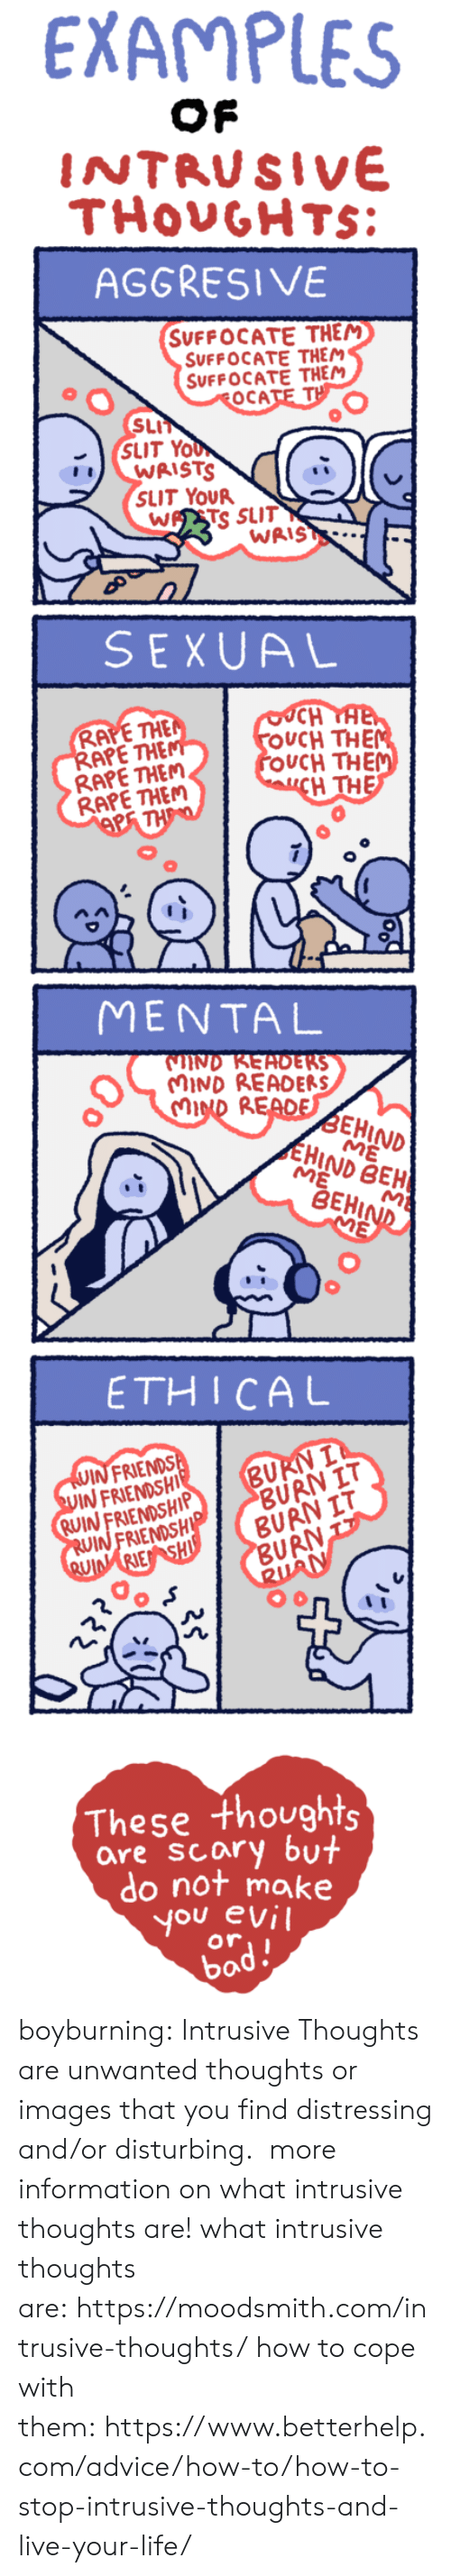 ethical: EXAMPLES  INTRUSIVE  THOUGHTS  AGGRESIVE  SUFFOCATE THEM  SUFFOCATE THEM  SUFFOCATE THEM  SLI  (SLIT Yo  SLIT YOUR  WASTS SLIT  WAIS  SEXUAL  CH  UCH THE  OUCH THE  H TH  RAPETHE  APE THE  RAPE THEM  RAPE THEM  MENTAL  IND READERS  CMIND R  EHIND  ME  HIND BEH  BEHIA  ETHICAL  INFRIENDS  IN FRIENDSHI  RUIN FRIENDSHIP  BU  ỀUR  BURN IT  IN FRIENDSH  URN  0  These thoughts  are scary but  do not make  you evil  or  bad. boyburning:  Intrusive Thoughts are unwanted thoughts or images that you find distressing and/or disturbing.    more information on what intrusive thoughts are!   what intrusive thoughts are: https://moodsmith.com/intrusive-thoughts/ how to cope with them: https://www.betterhelp.com/advice/how-to/how-to-stop-intrusive-thoughts-and-live-your-life/